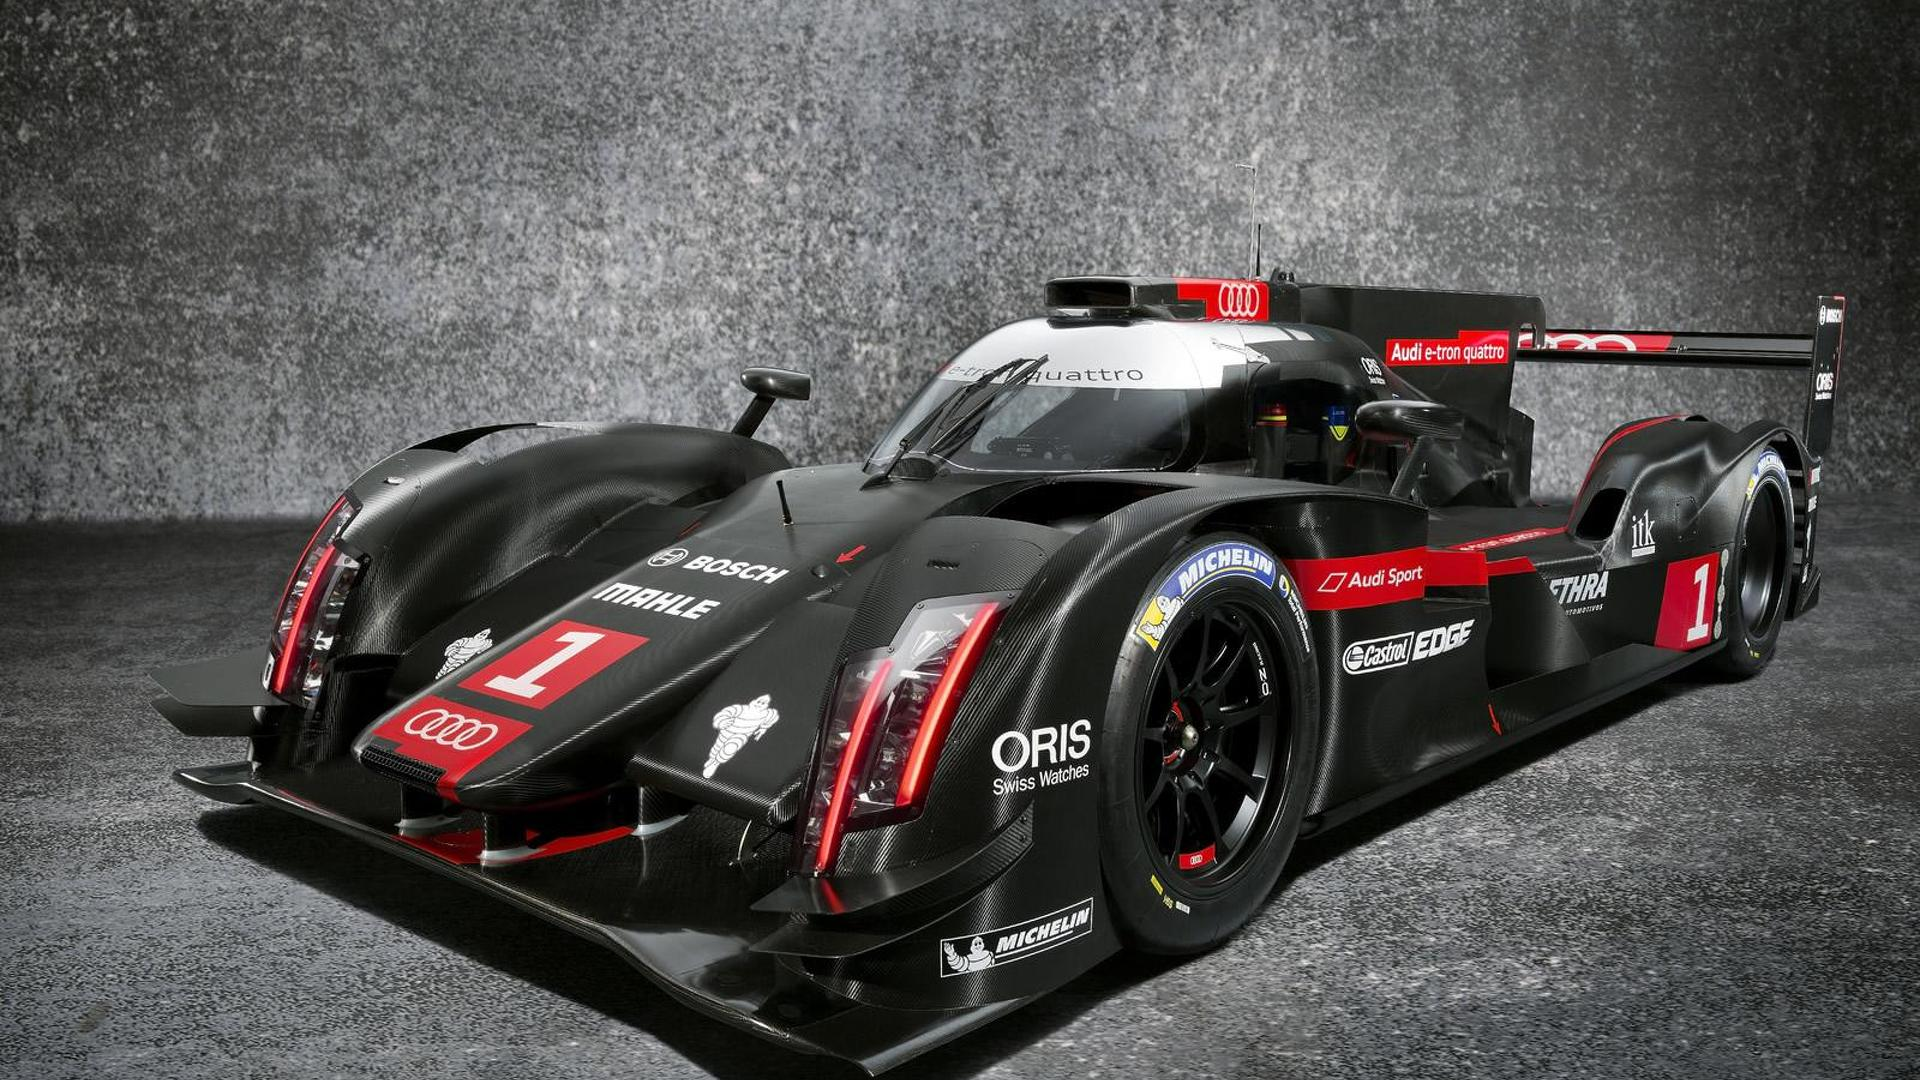 Audi R18 e-tron quattro to use an improved all-wheel drive system & Motor Generator Unit